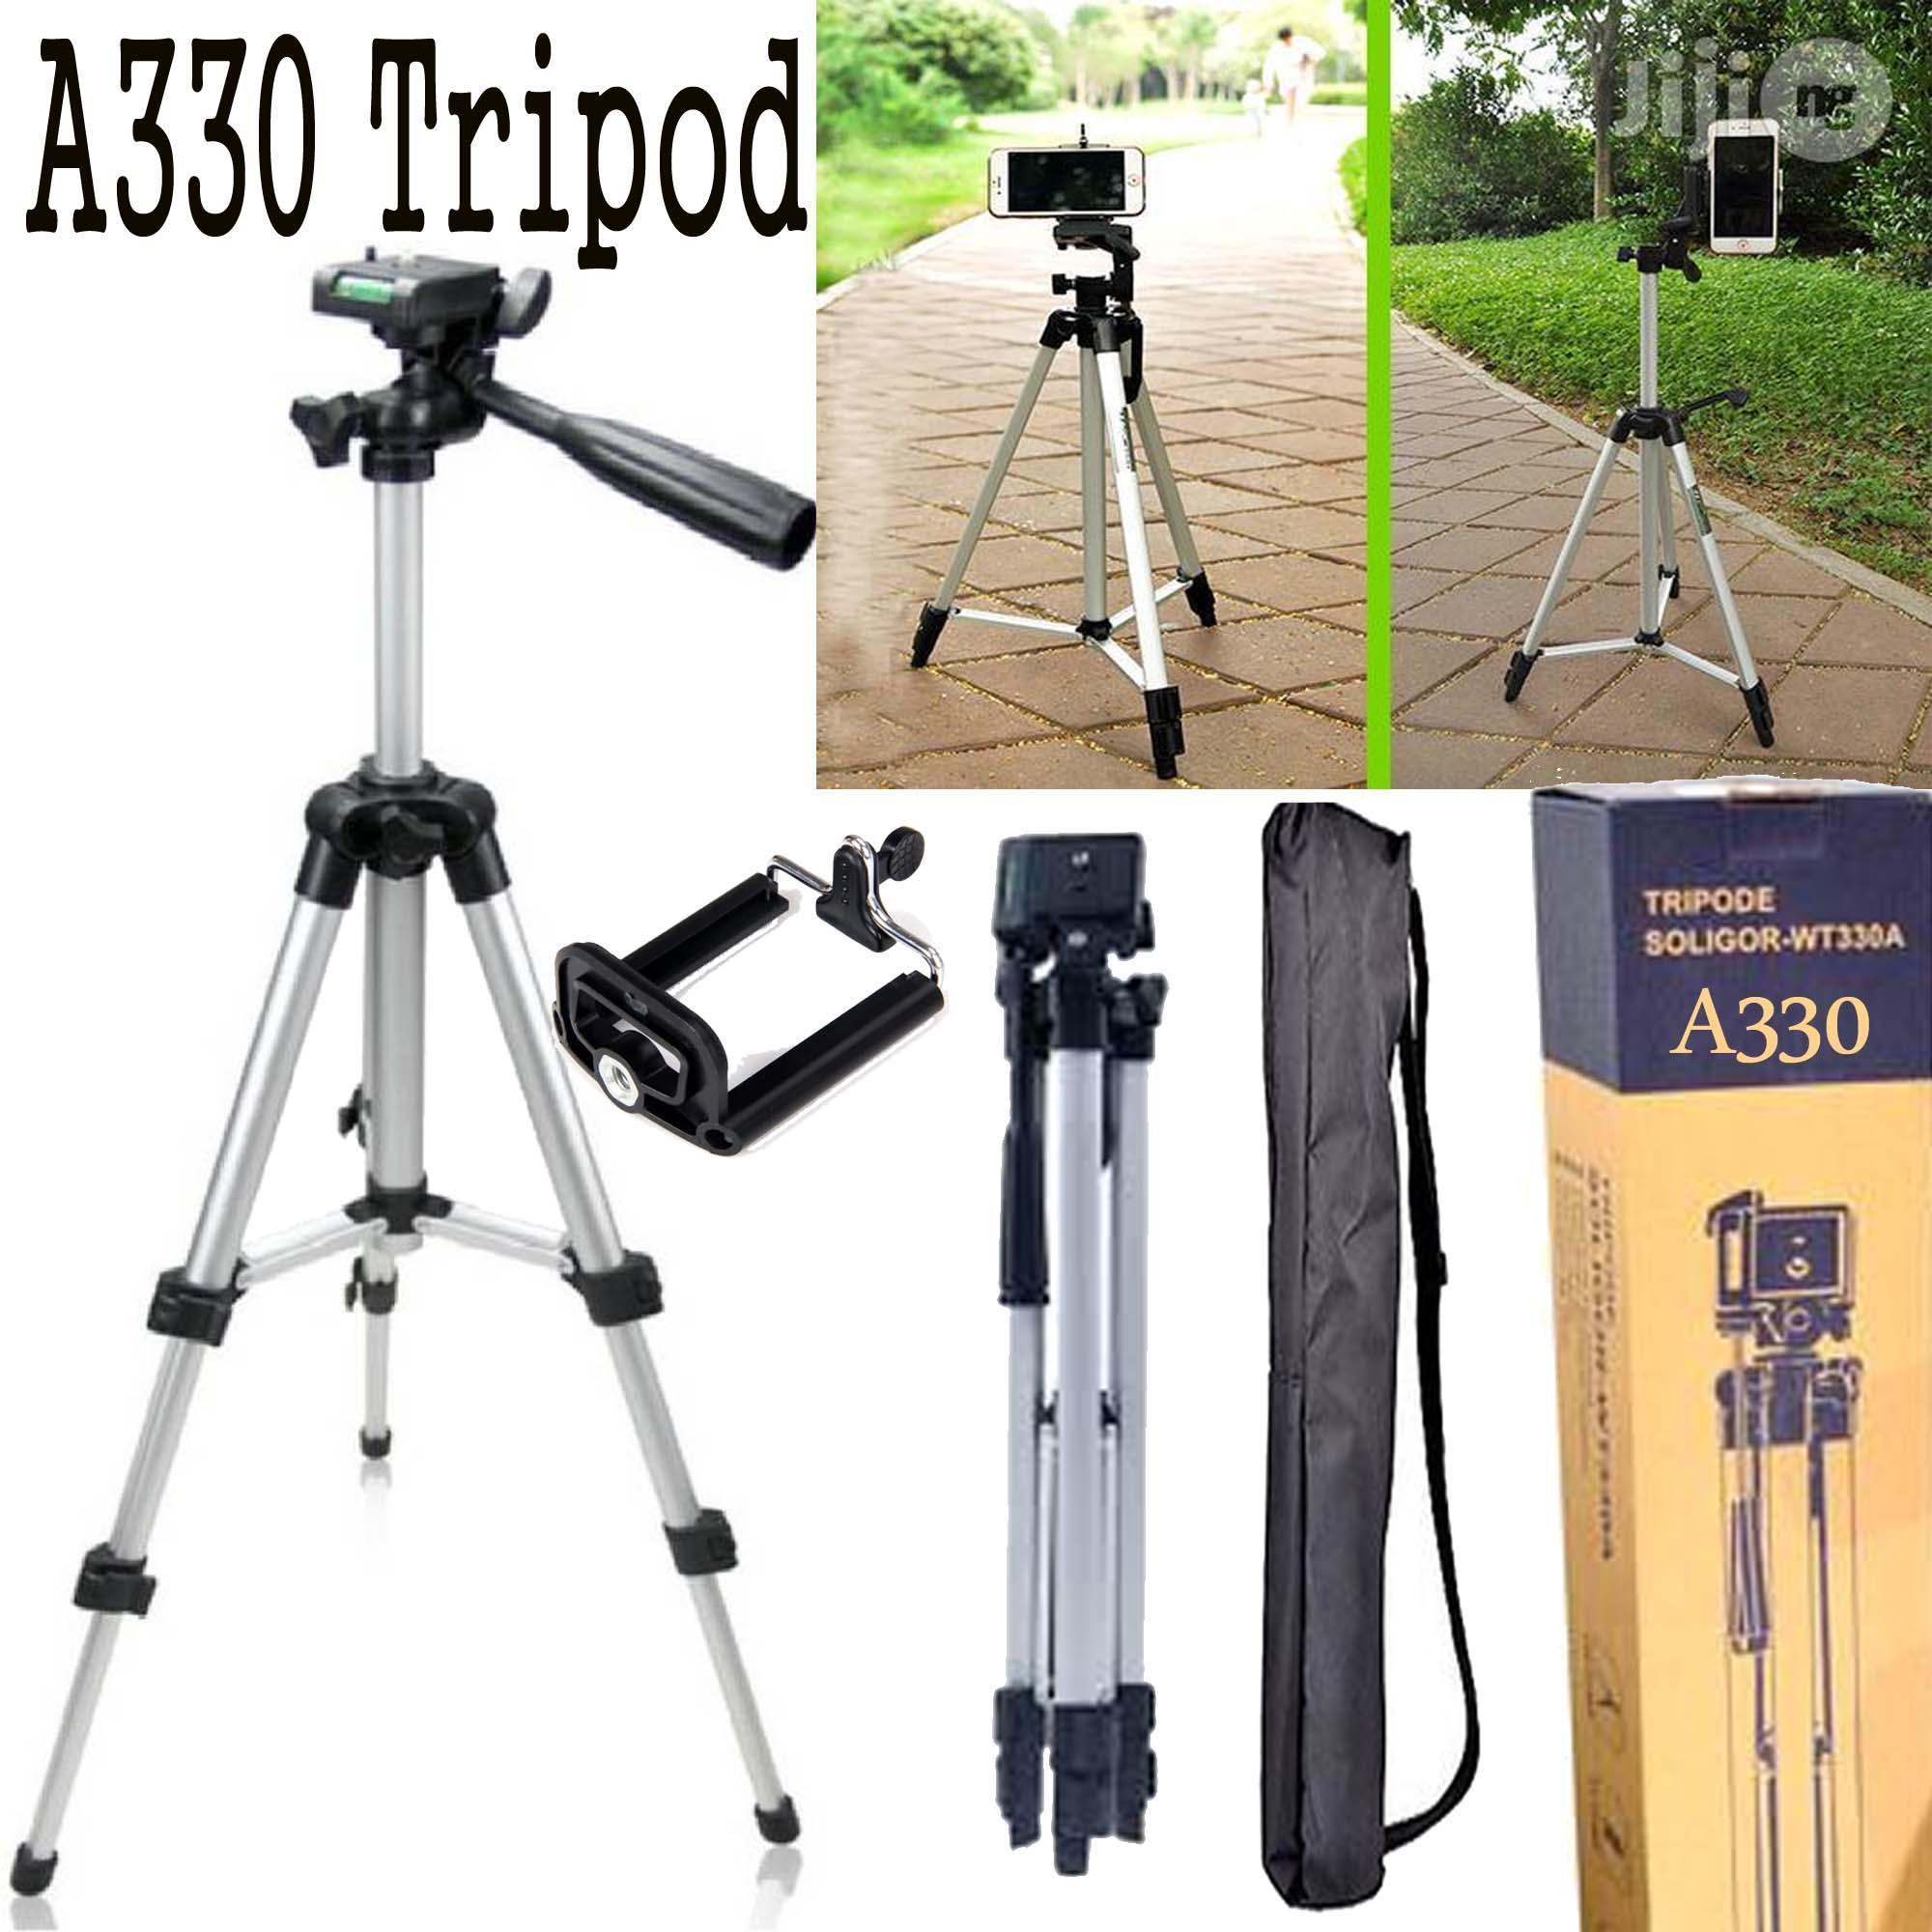 330 Big Tripod 5 Feet Mobile Stand For Mobile and Digital Camera Video Capturing